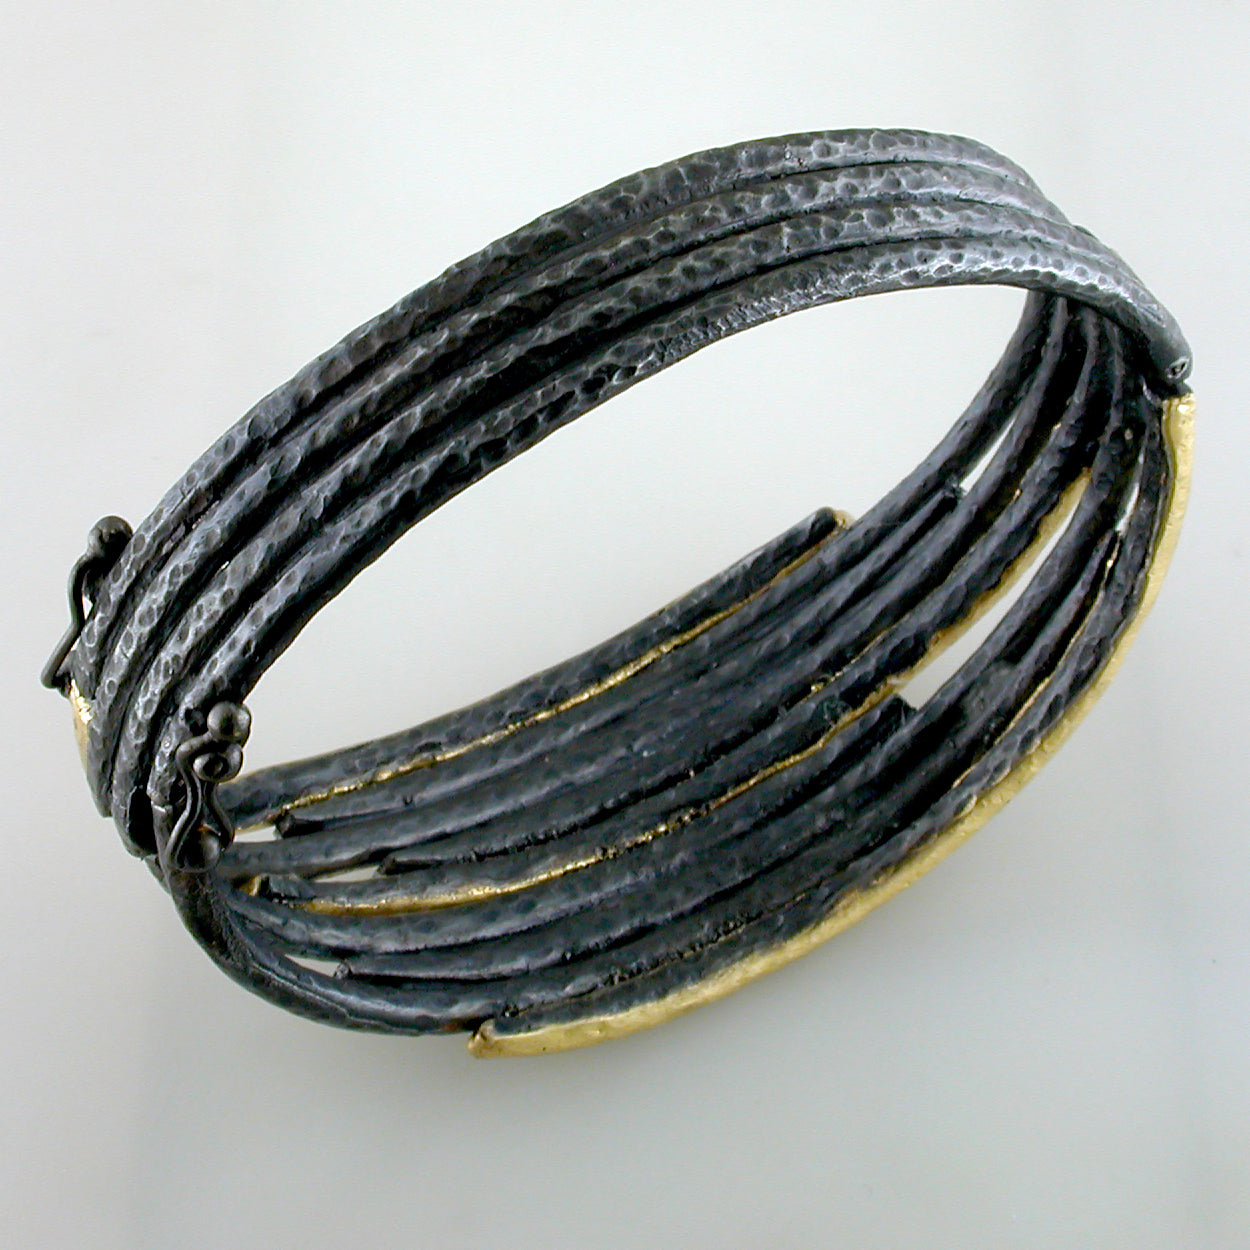 "Lika Behar ""Zebra"" Diamond Bracelet in 24K Gold & Oxidized Silver"